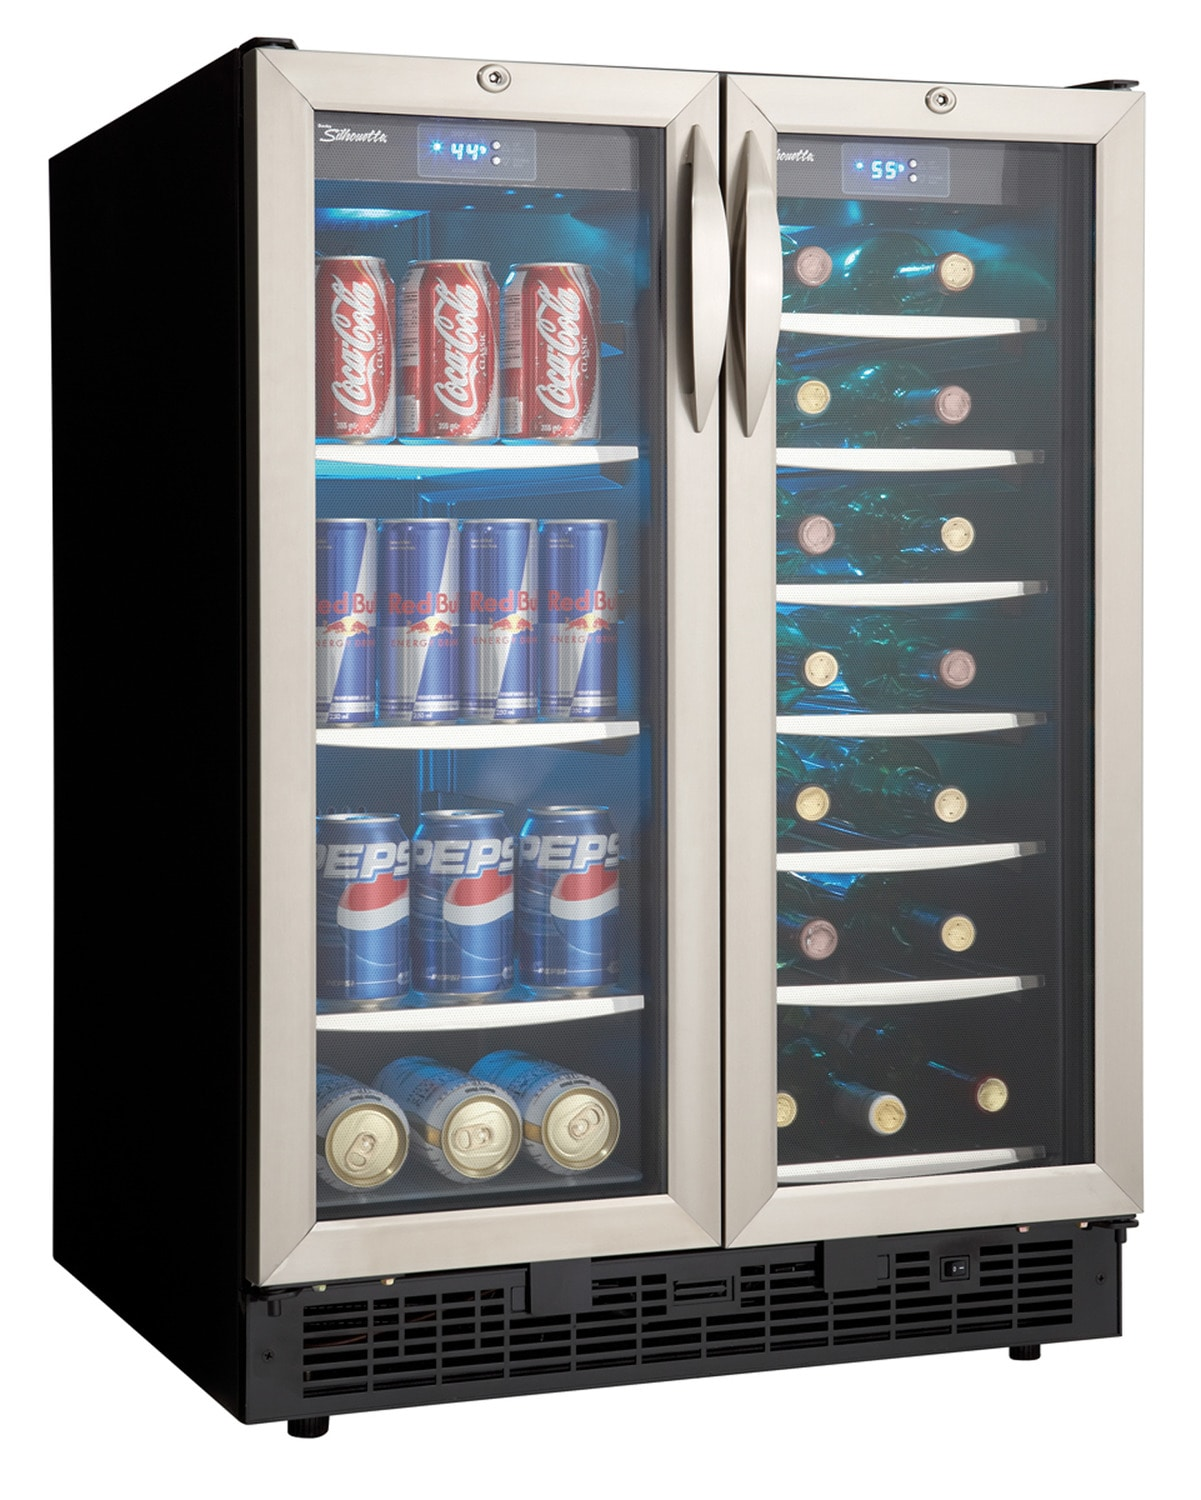 Danby Stainless Steel French Door Beverage Centre (5.1 Cu. Ft.) - DBC2760BLS